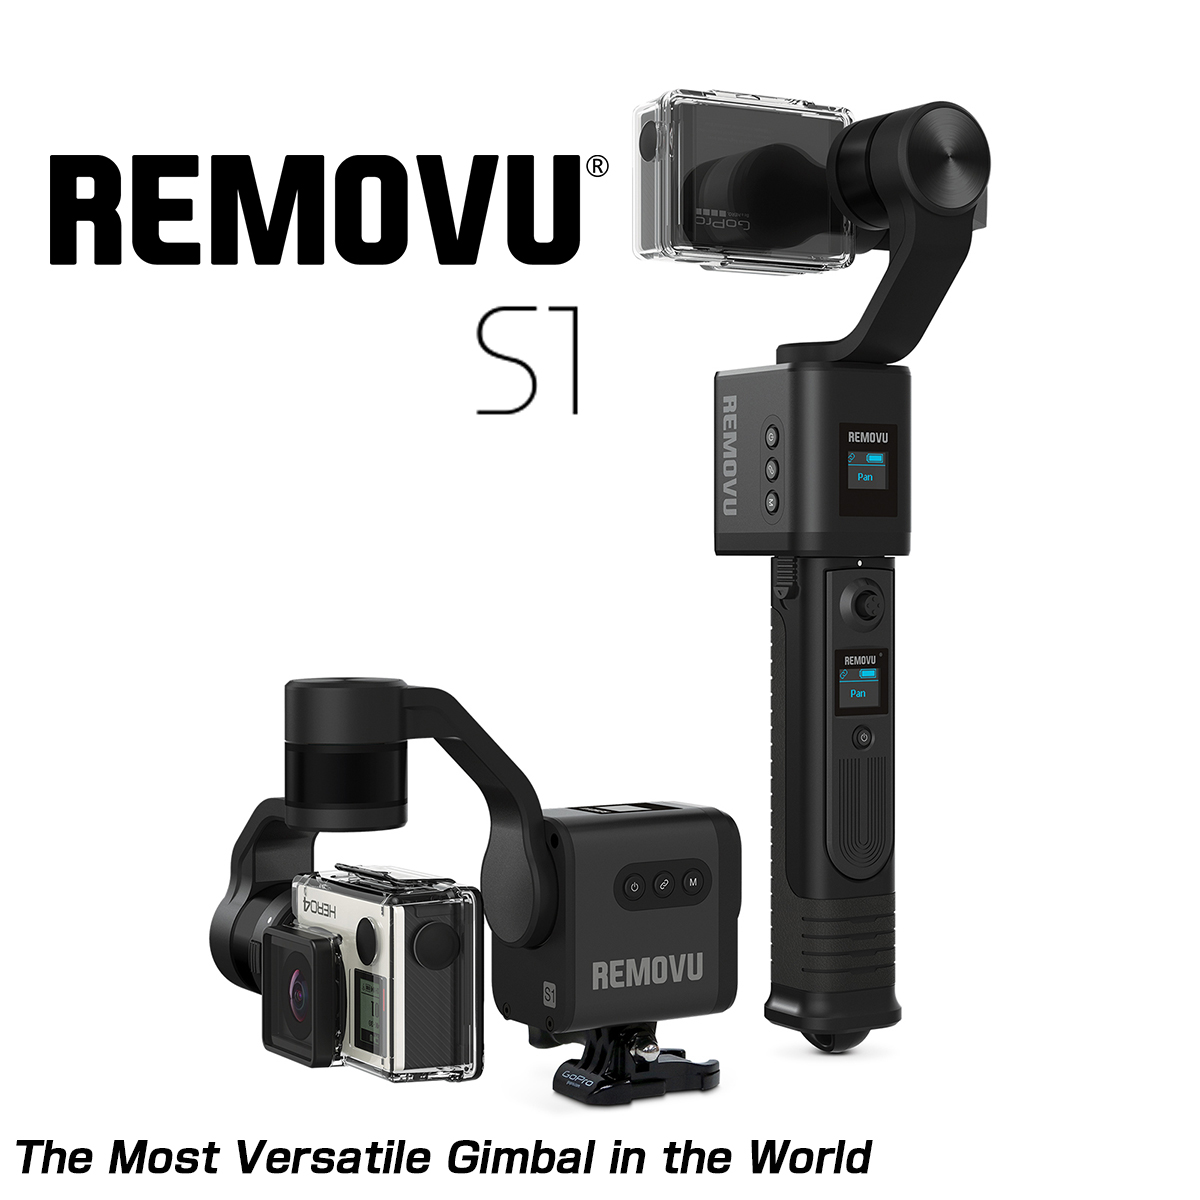 MOTOZEN REMOVU S1 Smart Gimbal for GoPro Camera/Sony Camera for HERO3, 3+/4/5/Session